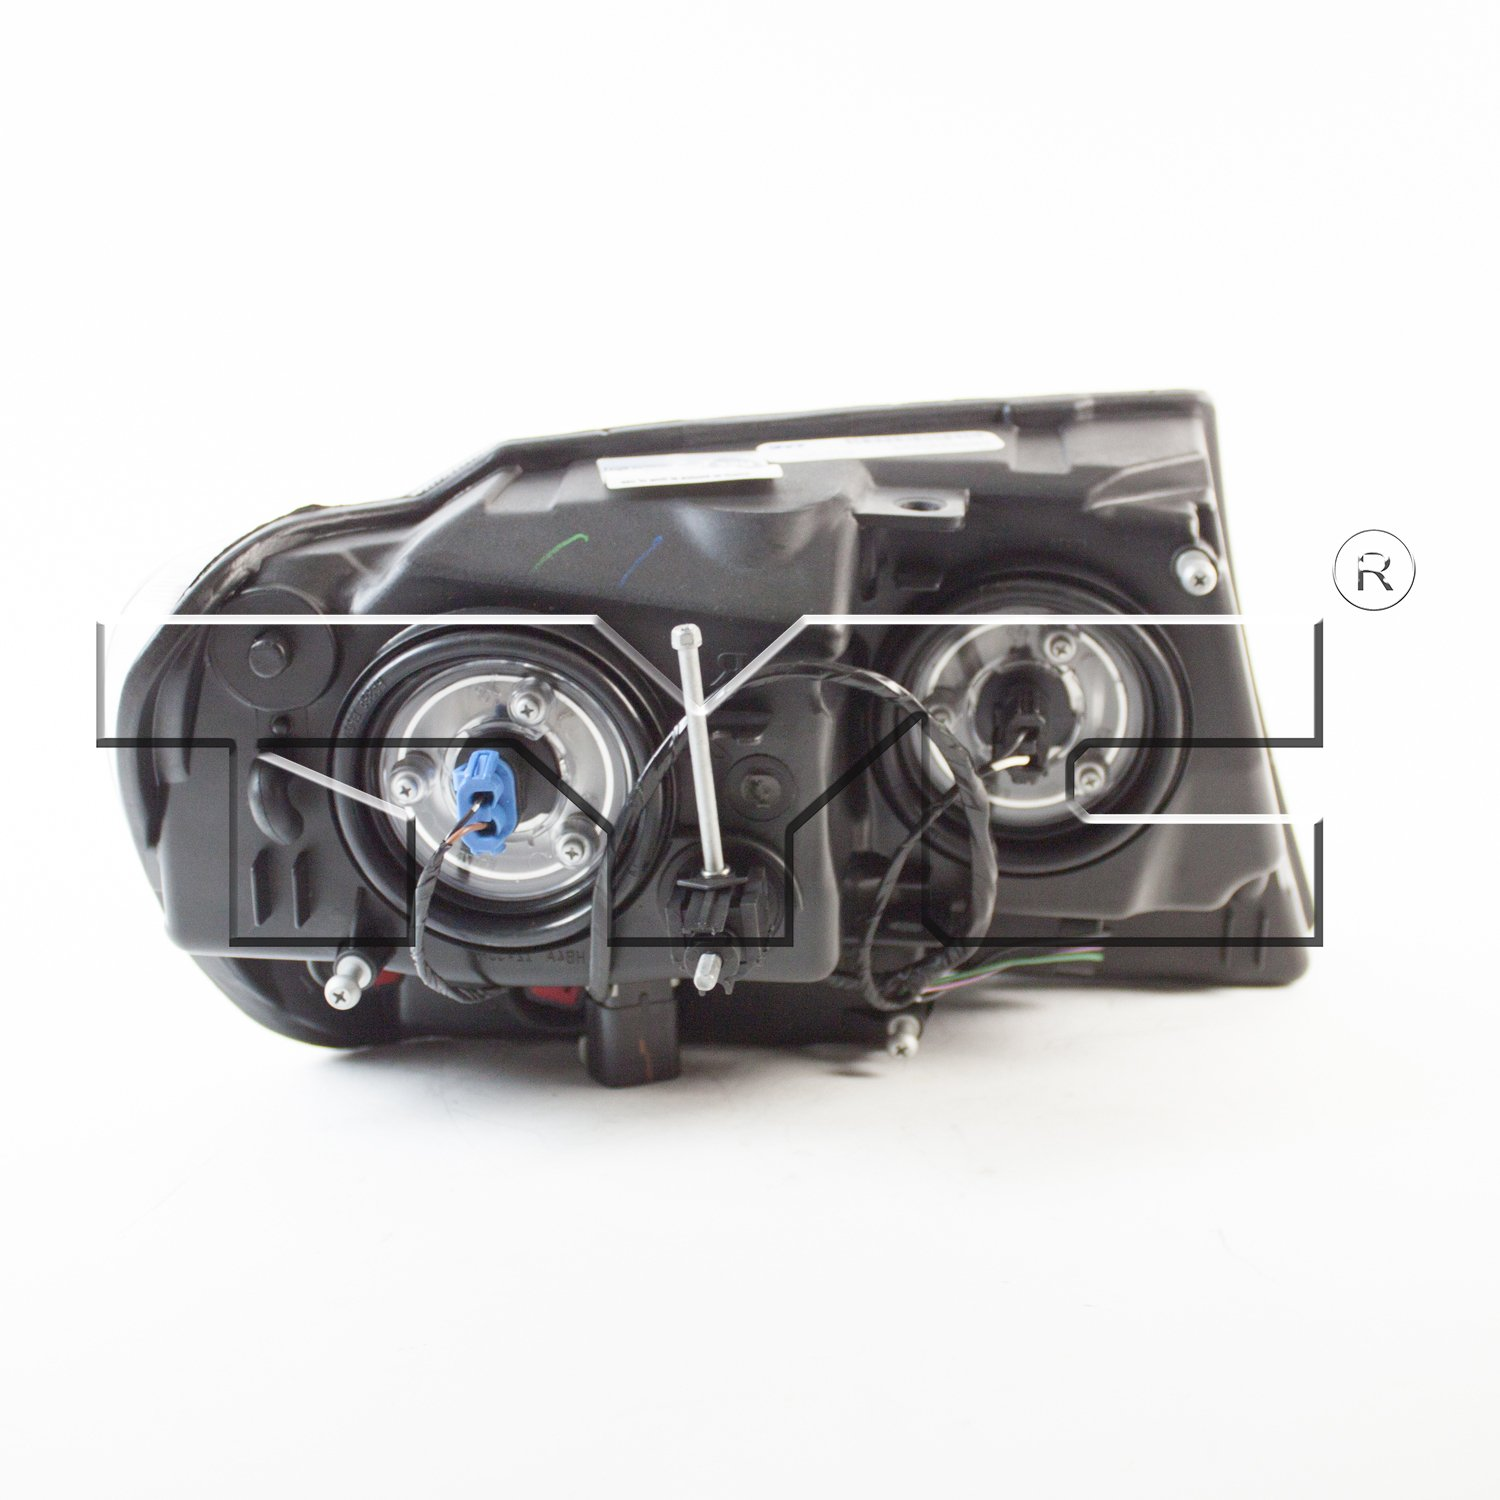 2002 Jeep Grand Cherokee Headlight Assembly TY 20 5576 00 1 ...